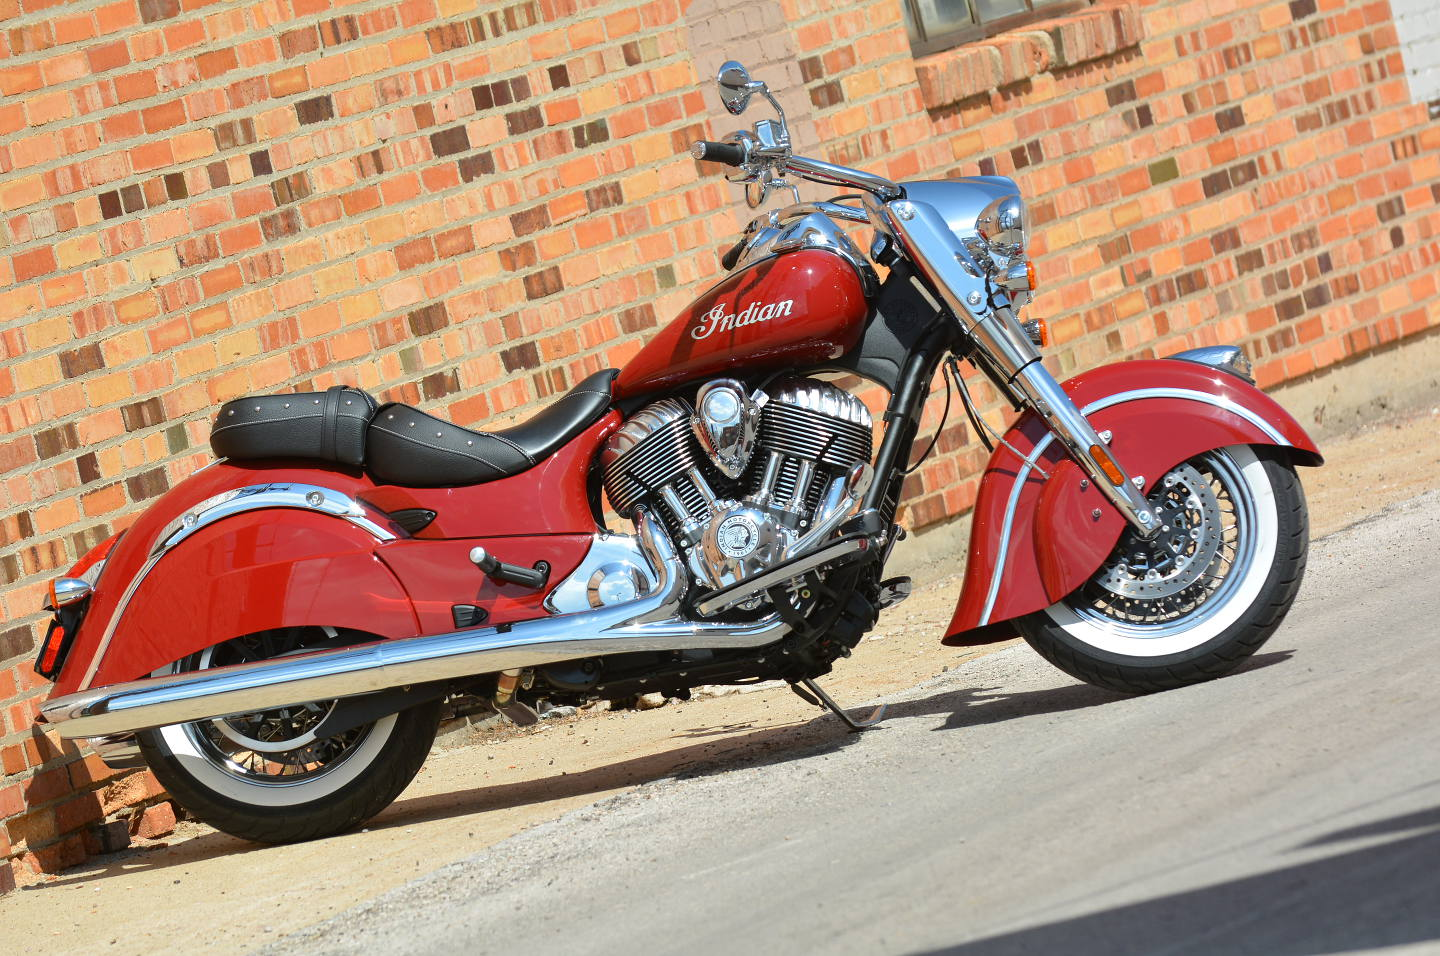 Indian Motorcycle Company Reveals All-New 2014 Indian Chief